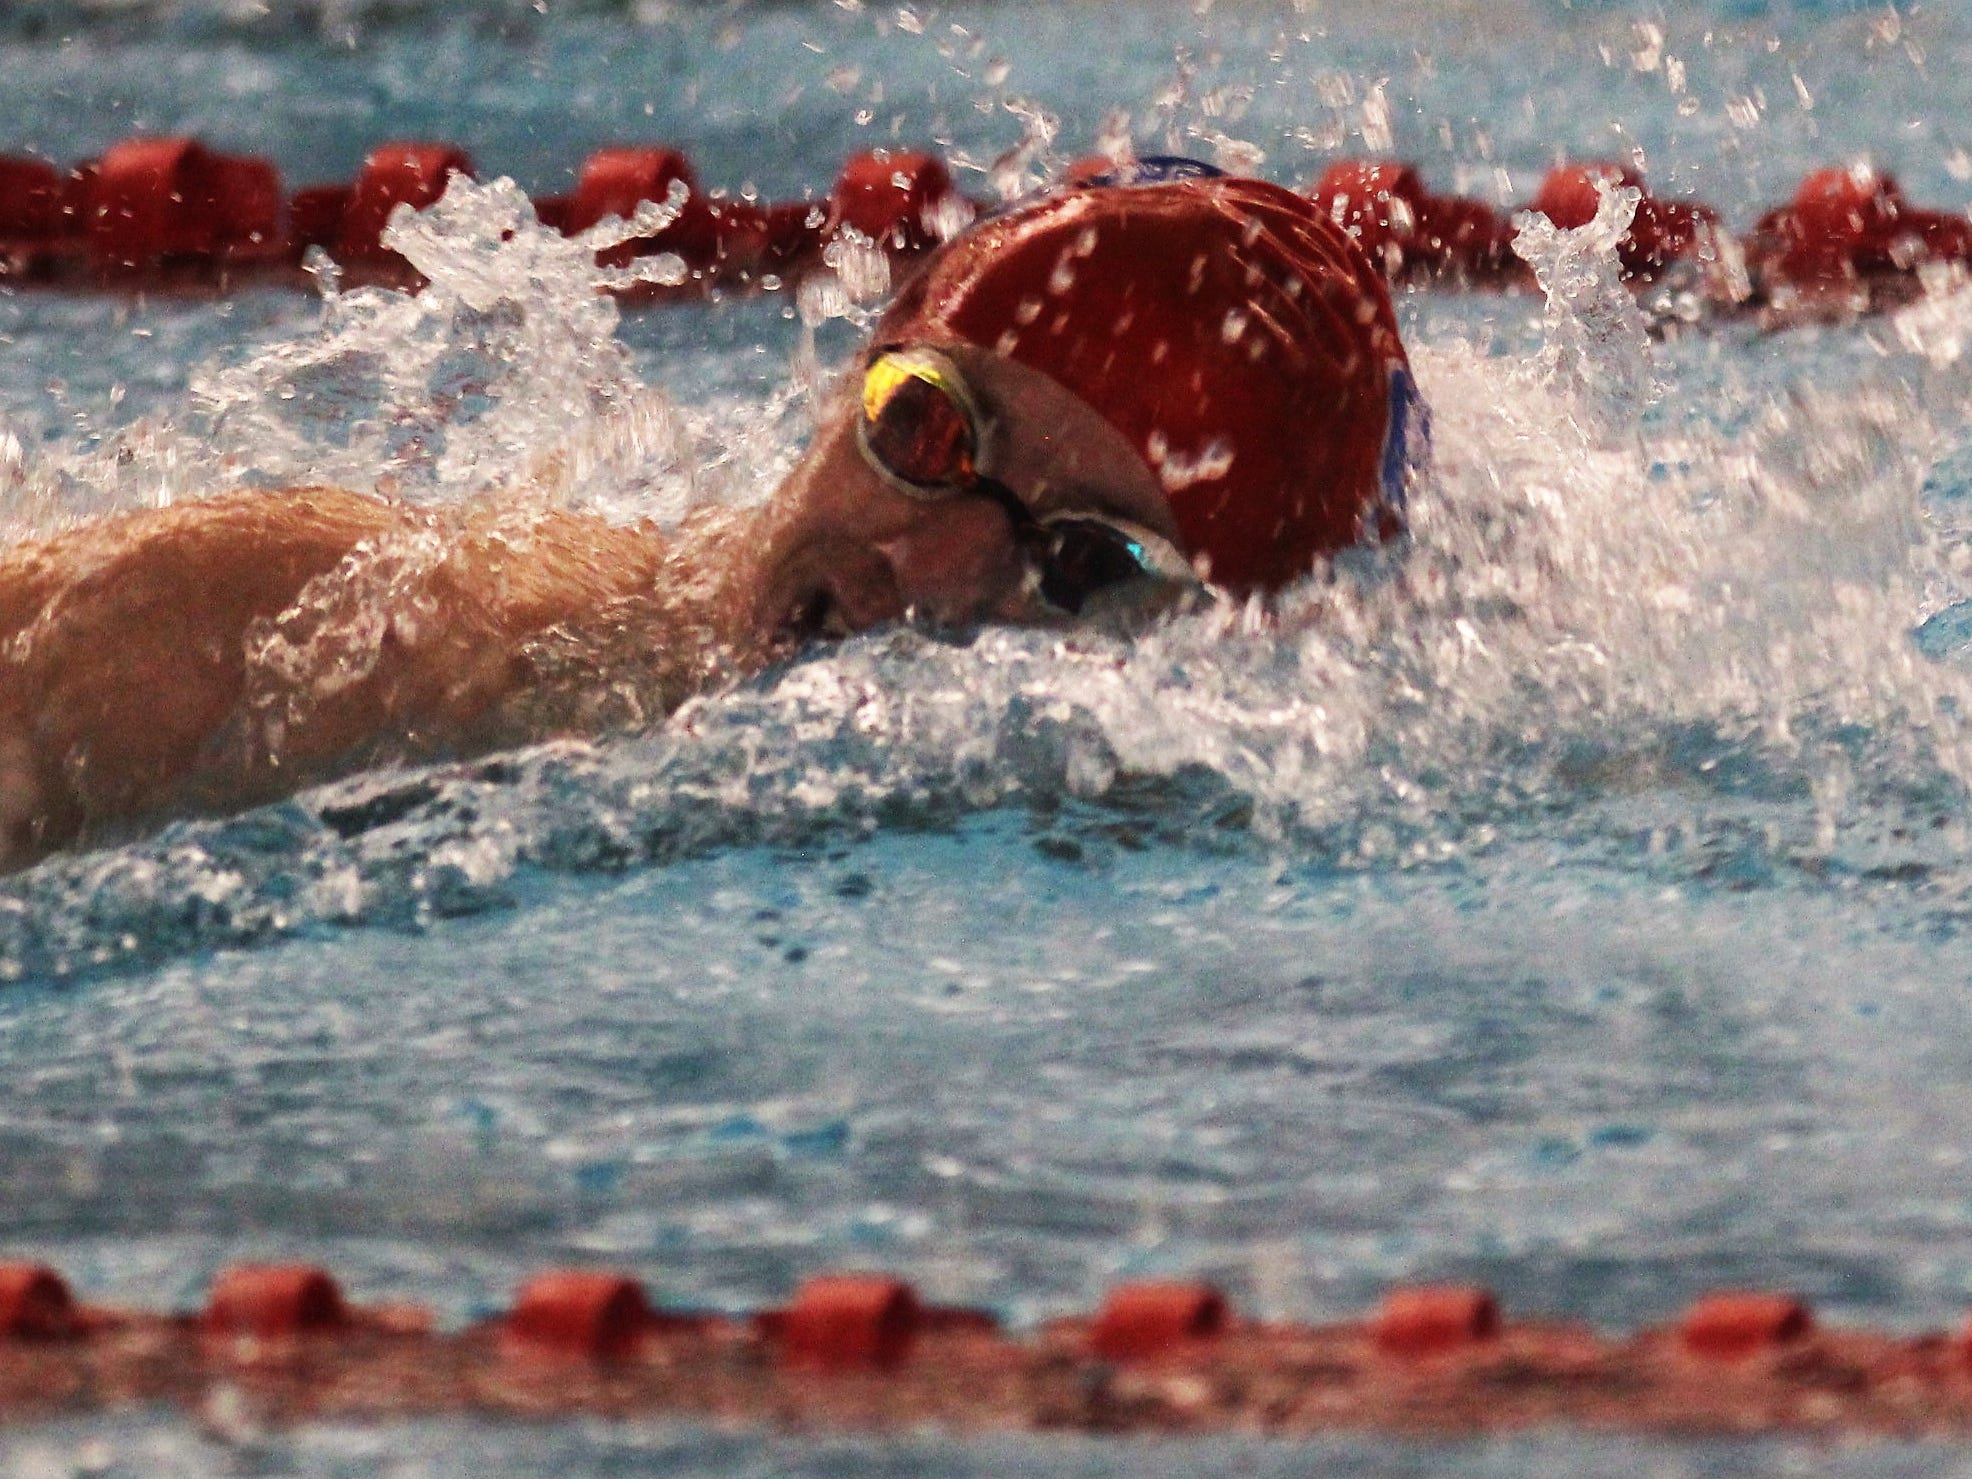 Conner senior Tommy Johnson swims the 200 freestyle during the KHSAA state boys swimming and diving championship Feb. 22, 2019 at the University of Louisville.